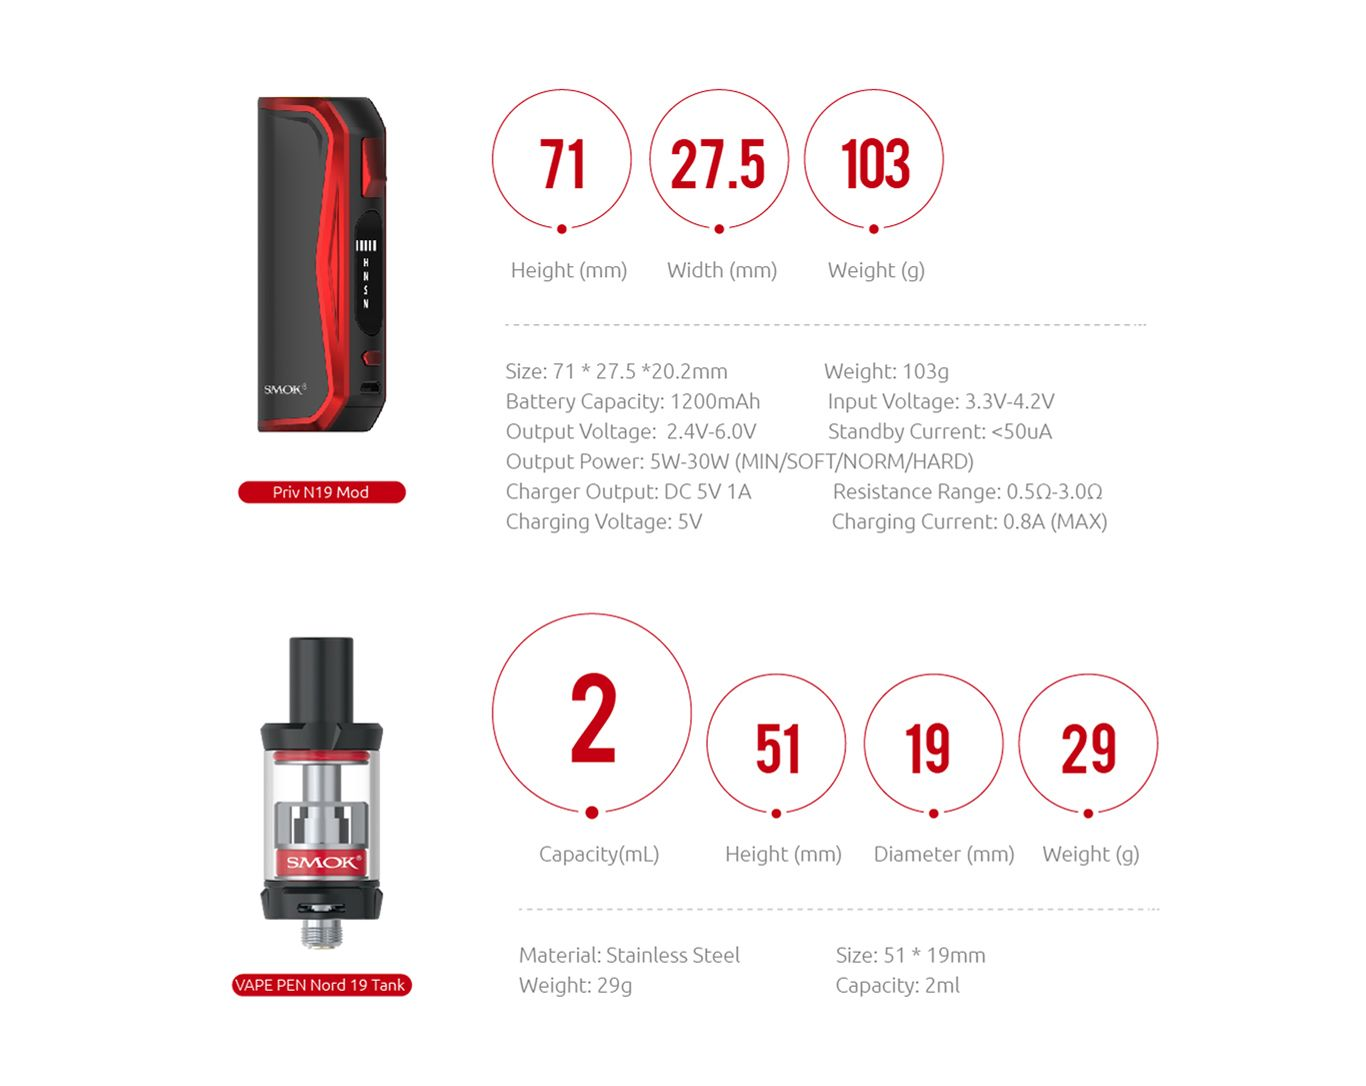 Smok Priv N19 specifications